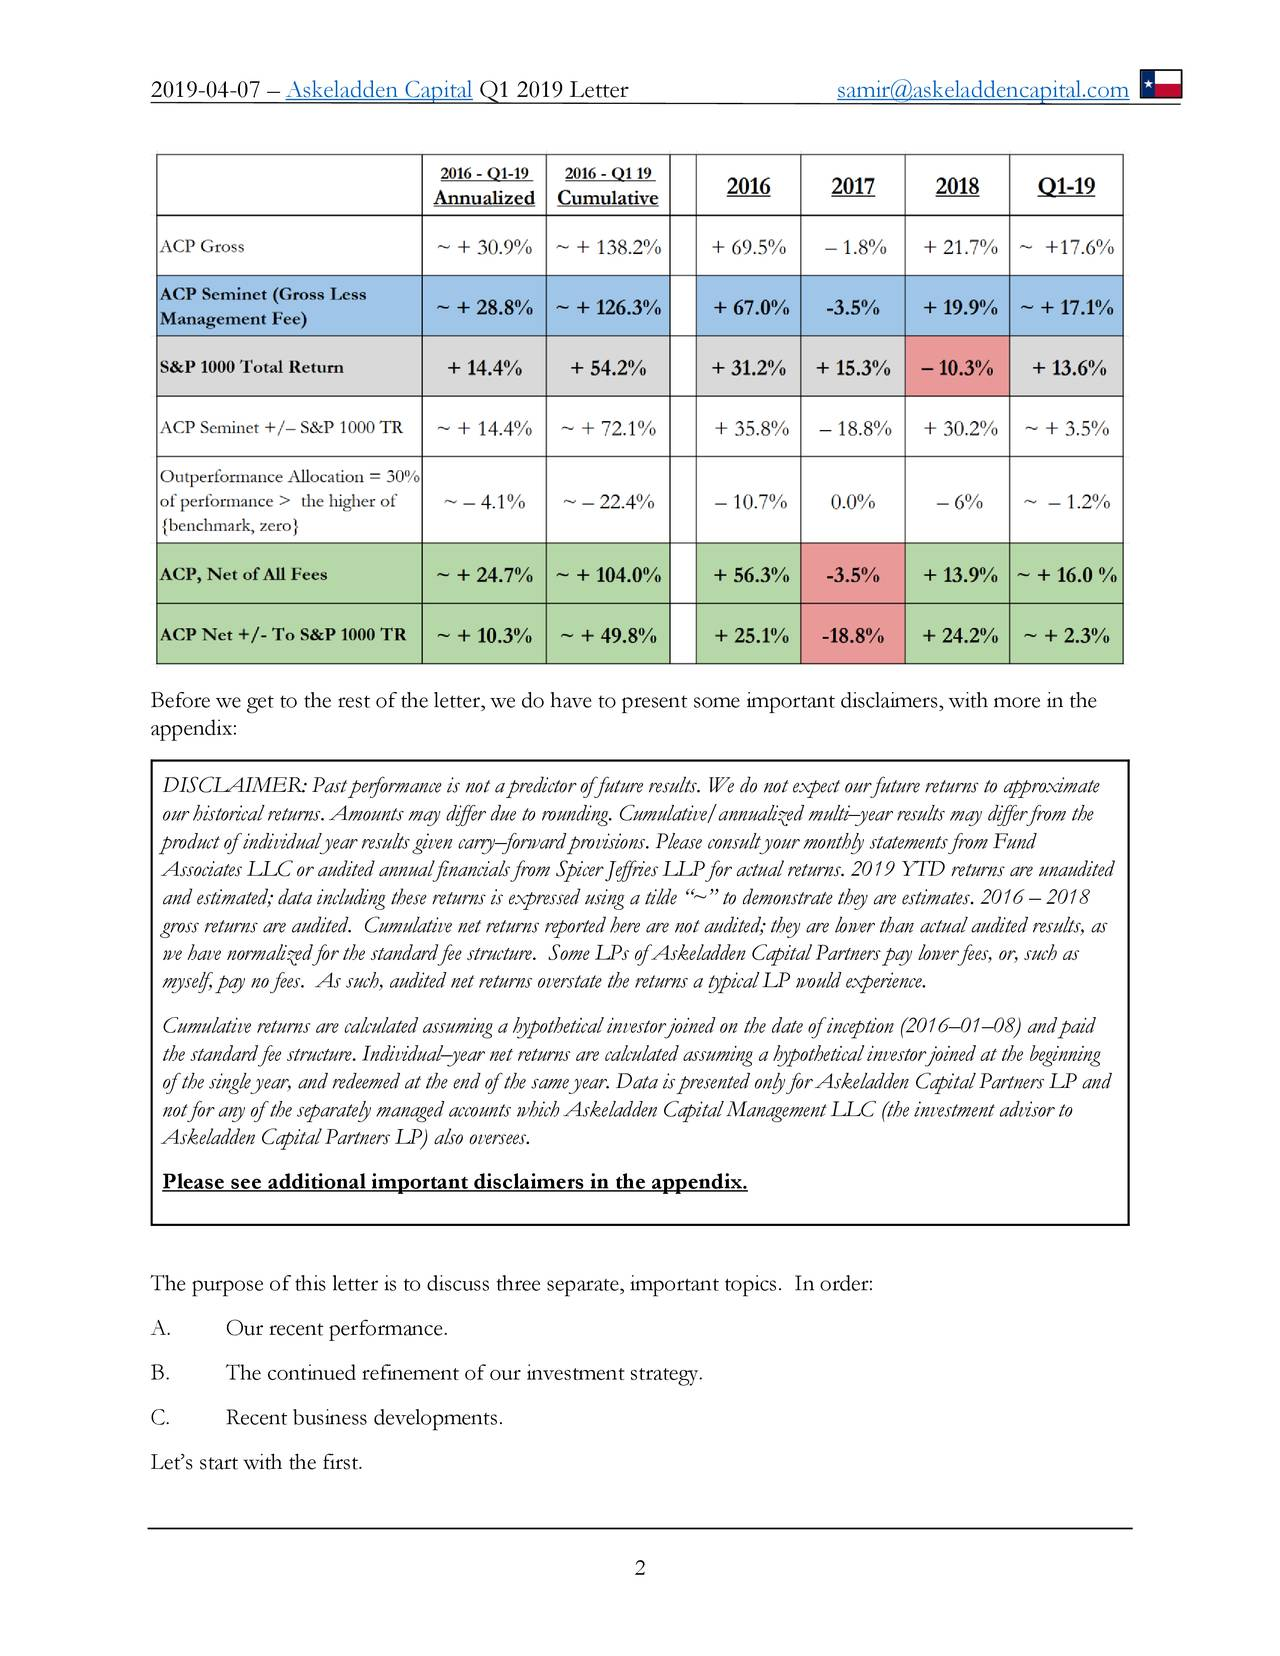 """Before we get to the rest of the letter, we do have to present some important disclaimers, with more in the appendix: DISCLAIMER: Past performance is not a predictor of future results. We do not expect our future returns to approximate our historical returns. Amounts may differ due to rounding. Cumulative/annualized multi–year results may differ from the product of individual year results given carry–forward provisions. Please consult your monthly statements from Fund Associates LLC or audited annual financials from Spicer Jeffries LLP for actual returns. 2019 YTD returns are unaudited and estimated; data including these returns is expressed using a tilde """"~"""" to demonstrate they are estimates. 2016 – 2018 gross returns are audited. Cumulative net returns reported here are not audited; they are lower than actual audited results, as we have normalized for the standard fee structure. Some LPs of Askeladden Capital Partners pay lower fees, or, such as myself, pay no fees. As such, audited net returns overstate the returns a typical LP would experience. Cumulative returns are calculated assuming a hypothetical investor joined on the date of inception (2016–01–08) and paid the standard fee structure. Individual–year net returns are calculated assuming a hypothetical investor joined at the beginning of the single year, and redeemed at the end of the same year. Data is presented only for Askeladden Capital Partners LP and not for any of the separately managed accounts which Askeladden Capital Management LLC (the investment advisor to Askeladden Capital Partners LP) also oversees. Please see additional important disclaimers in the appendix. The purpose of this letter is to discuss three separate, important topics. In order: A. Our recent performance. B. The continued refinement of our investment strategy. C. Recent business developments. Let's start with the first. 2"""